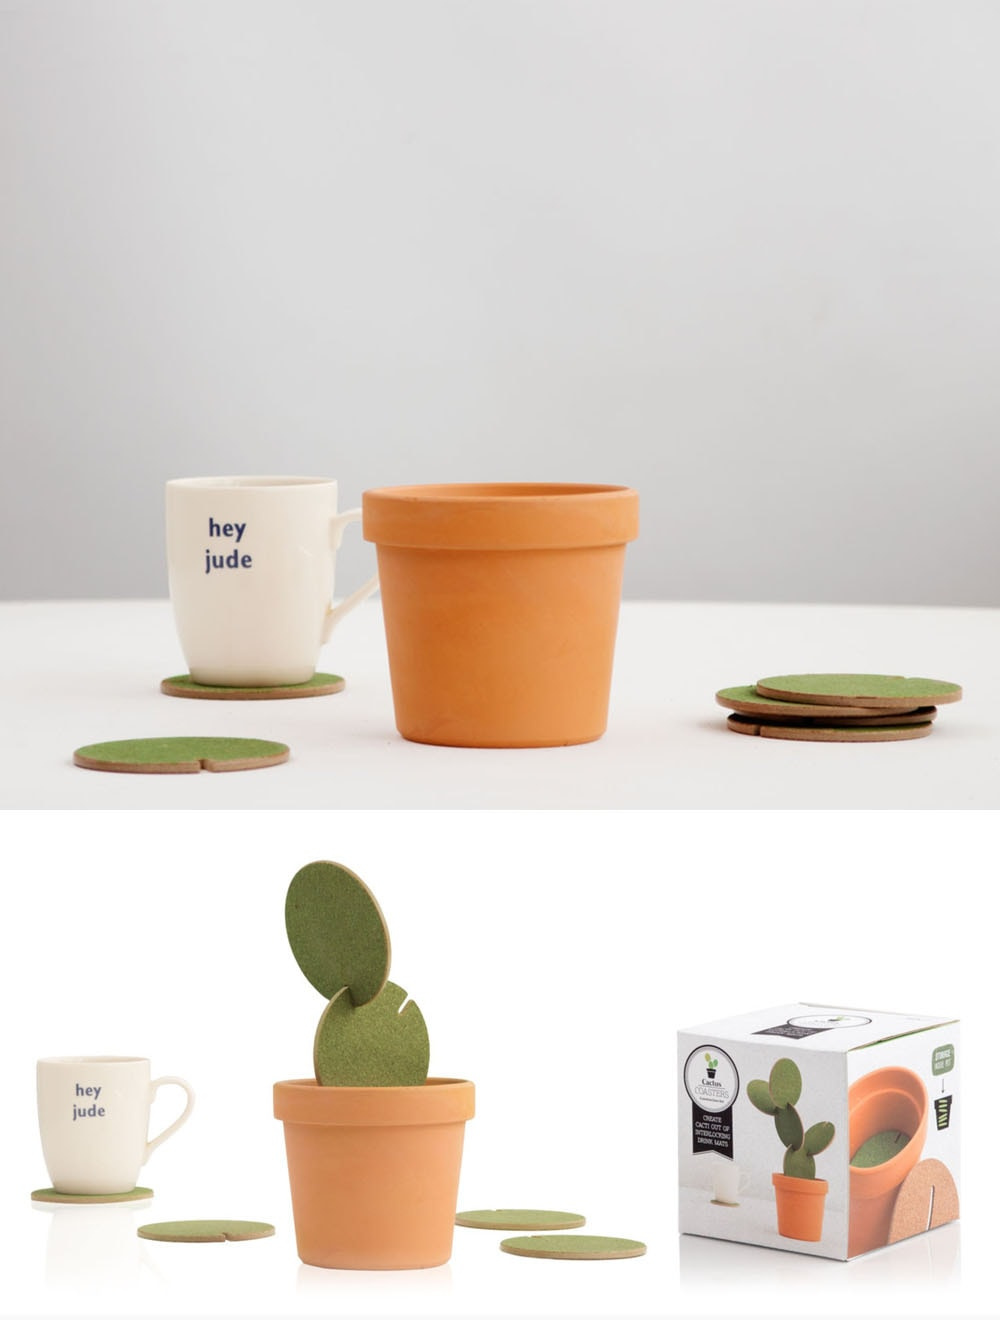 Cactus Coasters Construction Set Create Cacti Out Of Interlocking Drinks Mats